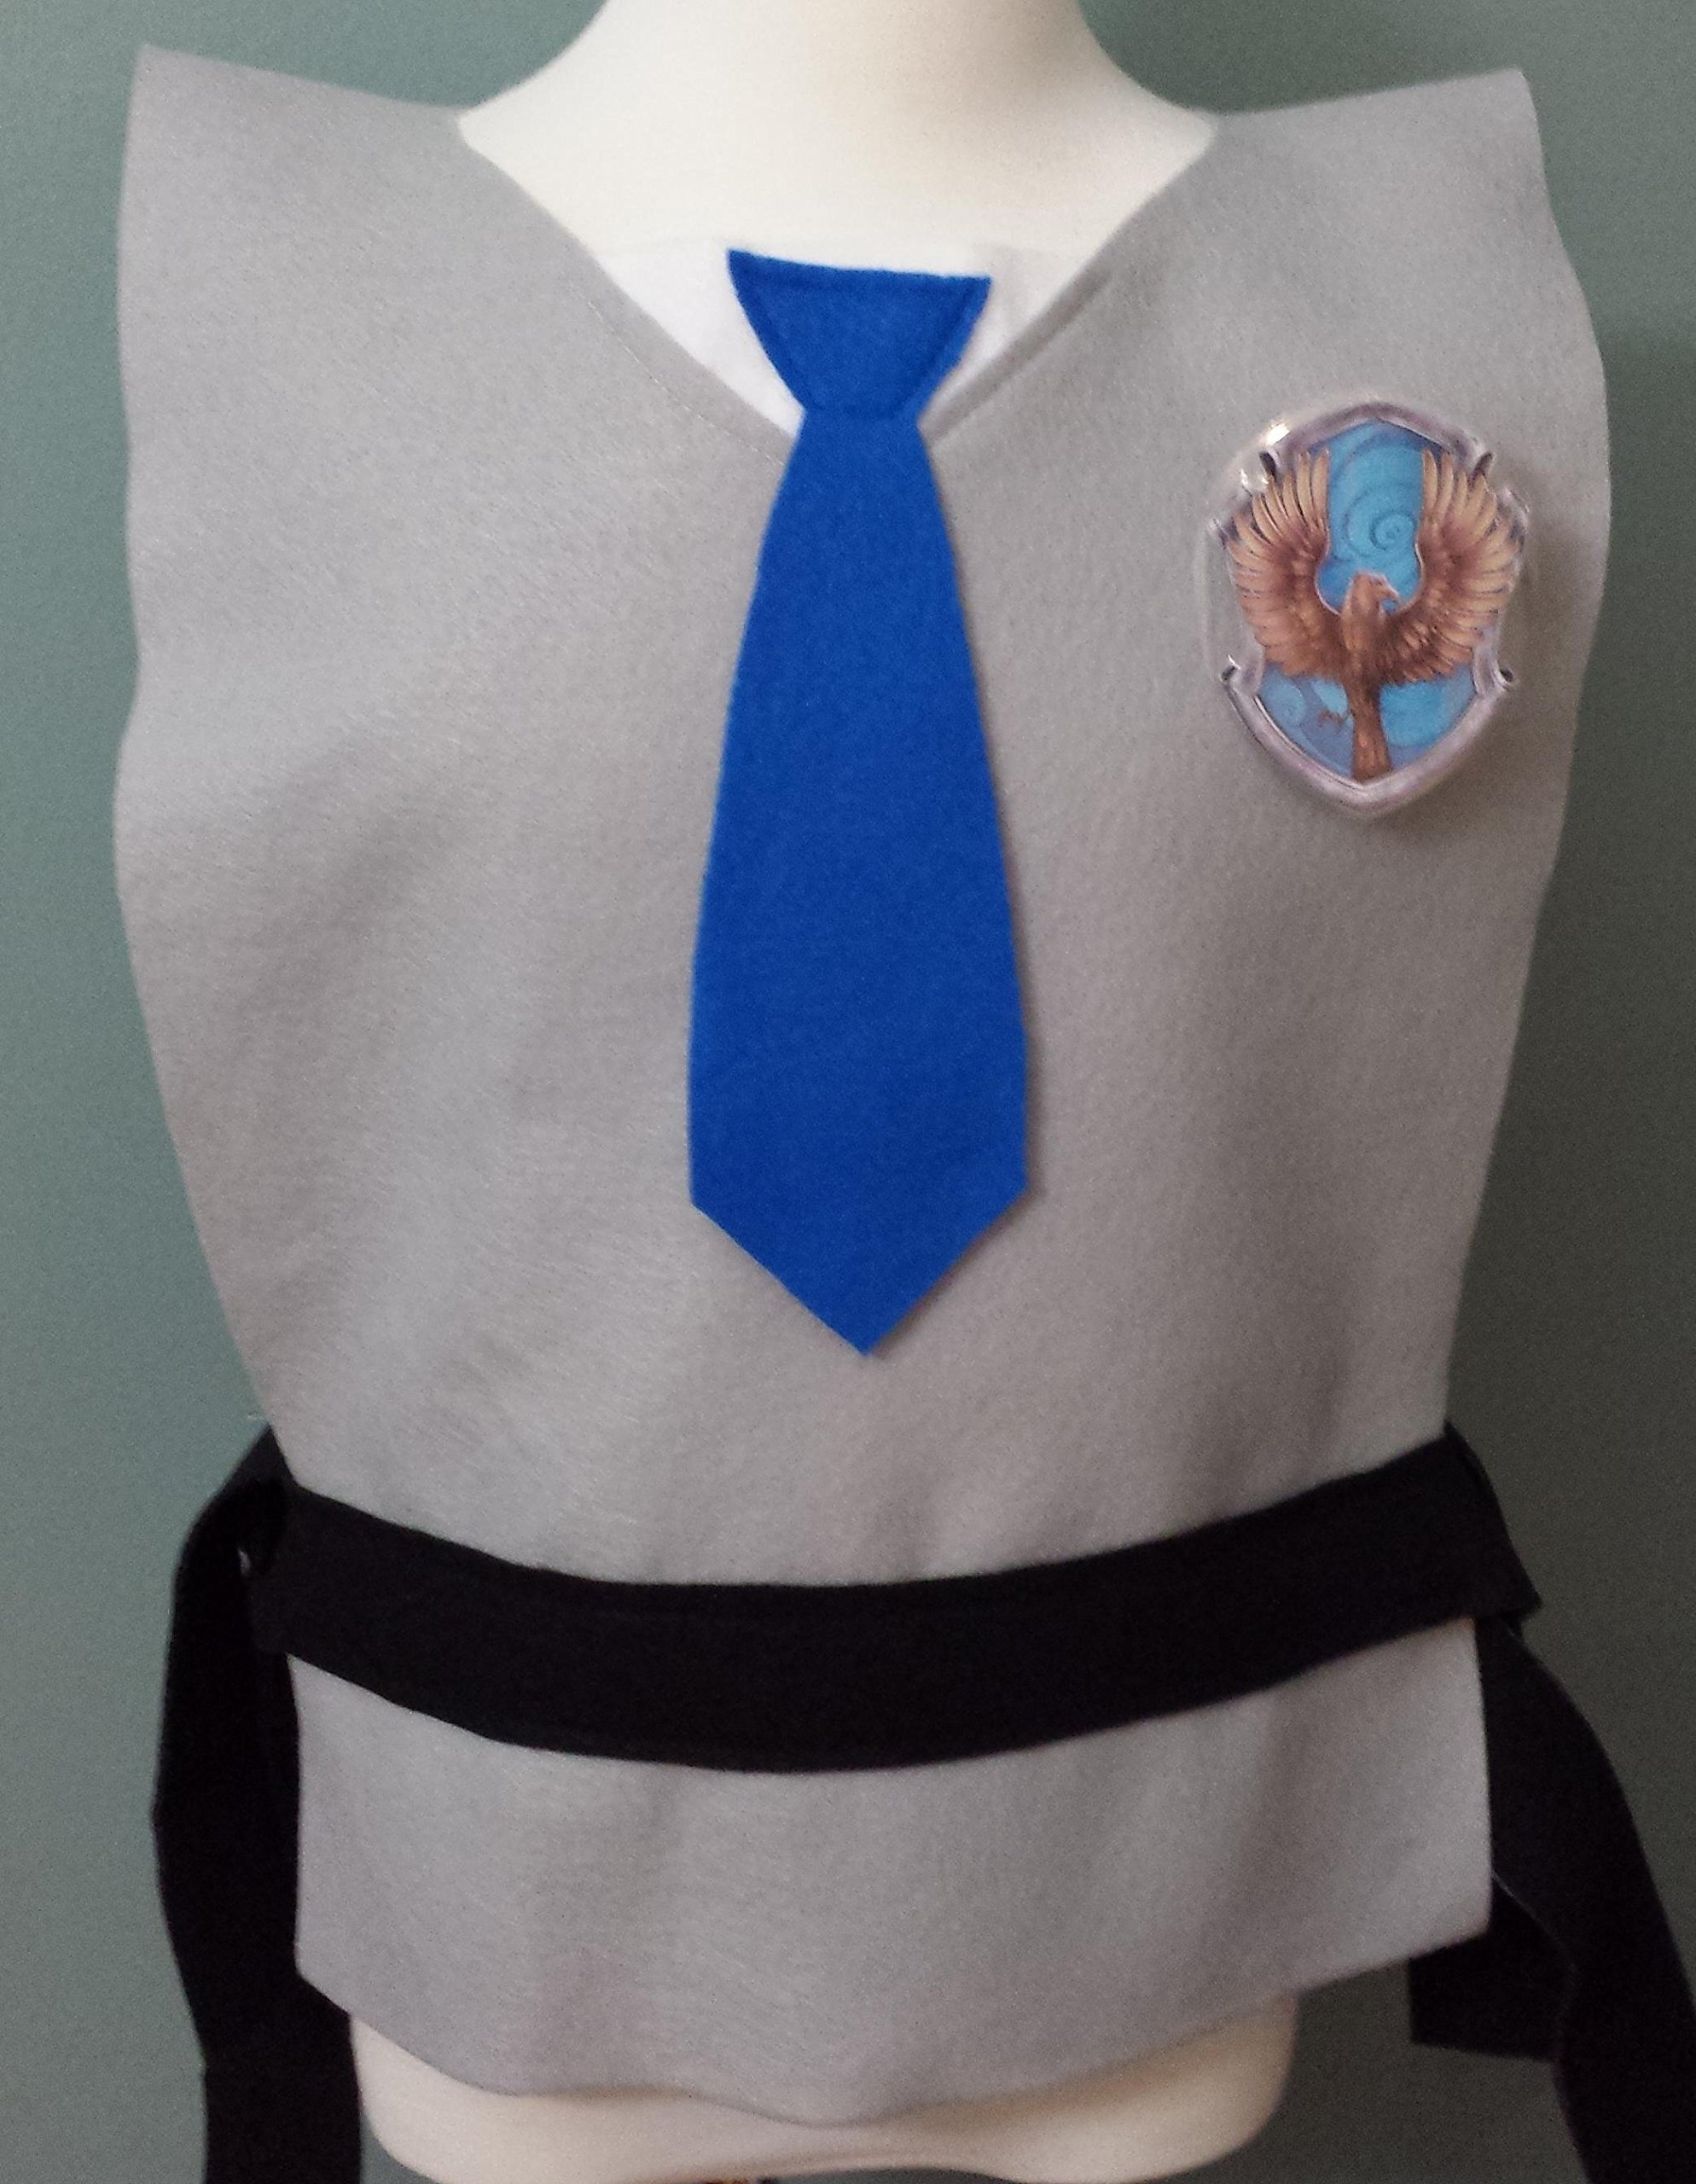 Kids Ravenclaw Costume Tunic - Perfect for under your robe! (Harry Potter/Luna Lovegood/Hogwarts) - Baby/Toddler/Kids/Teen/Adult Size